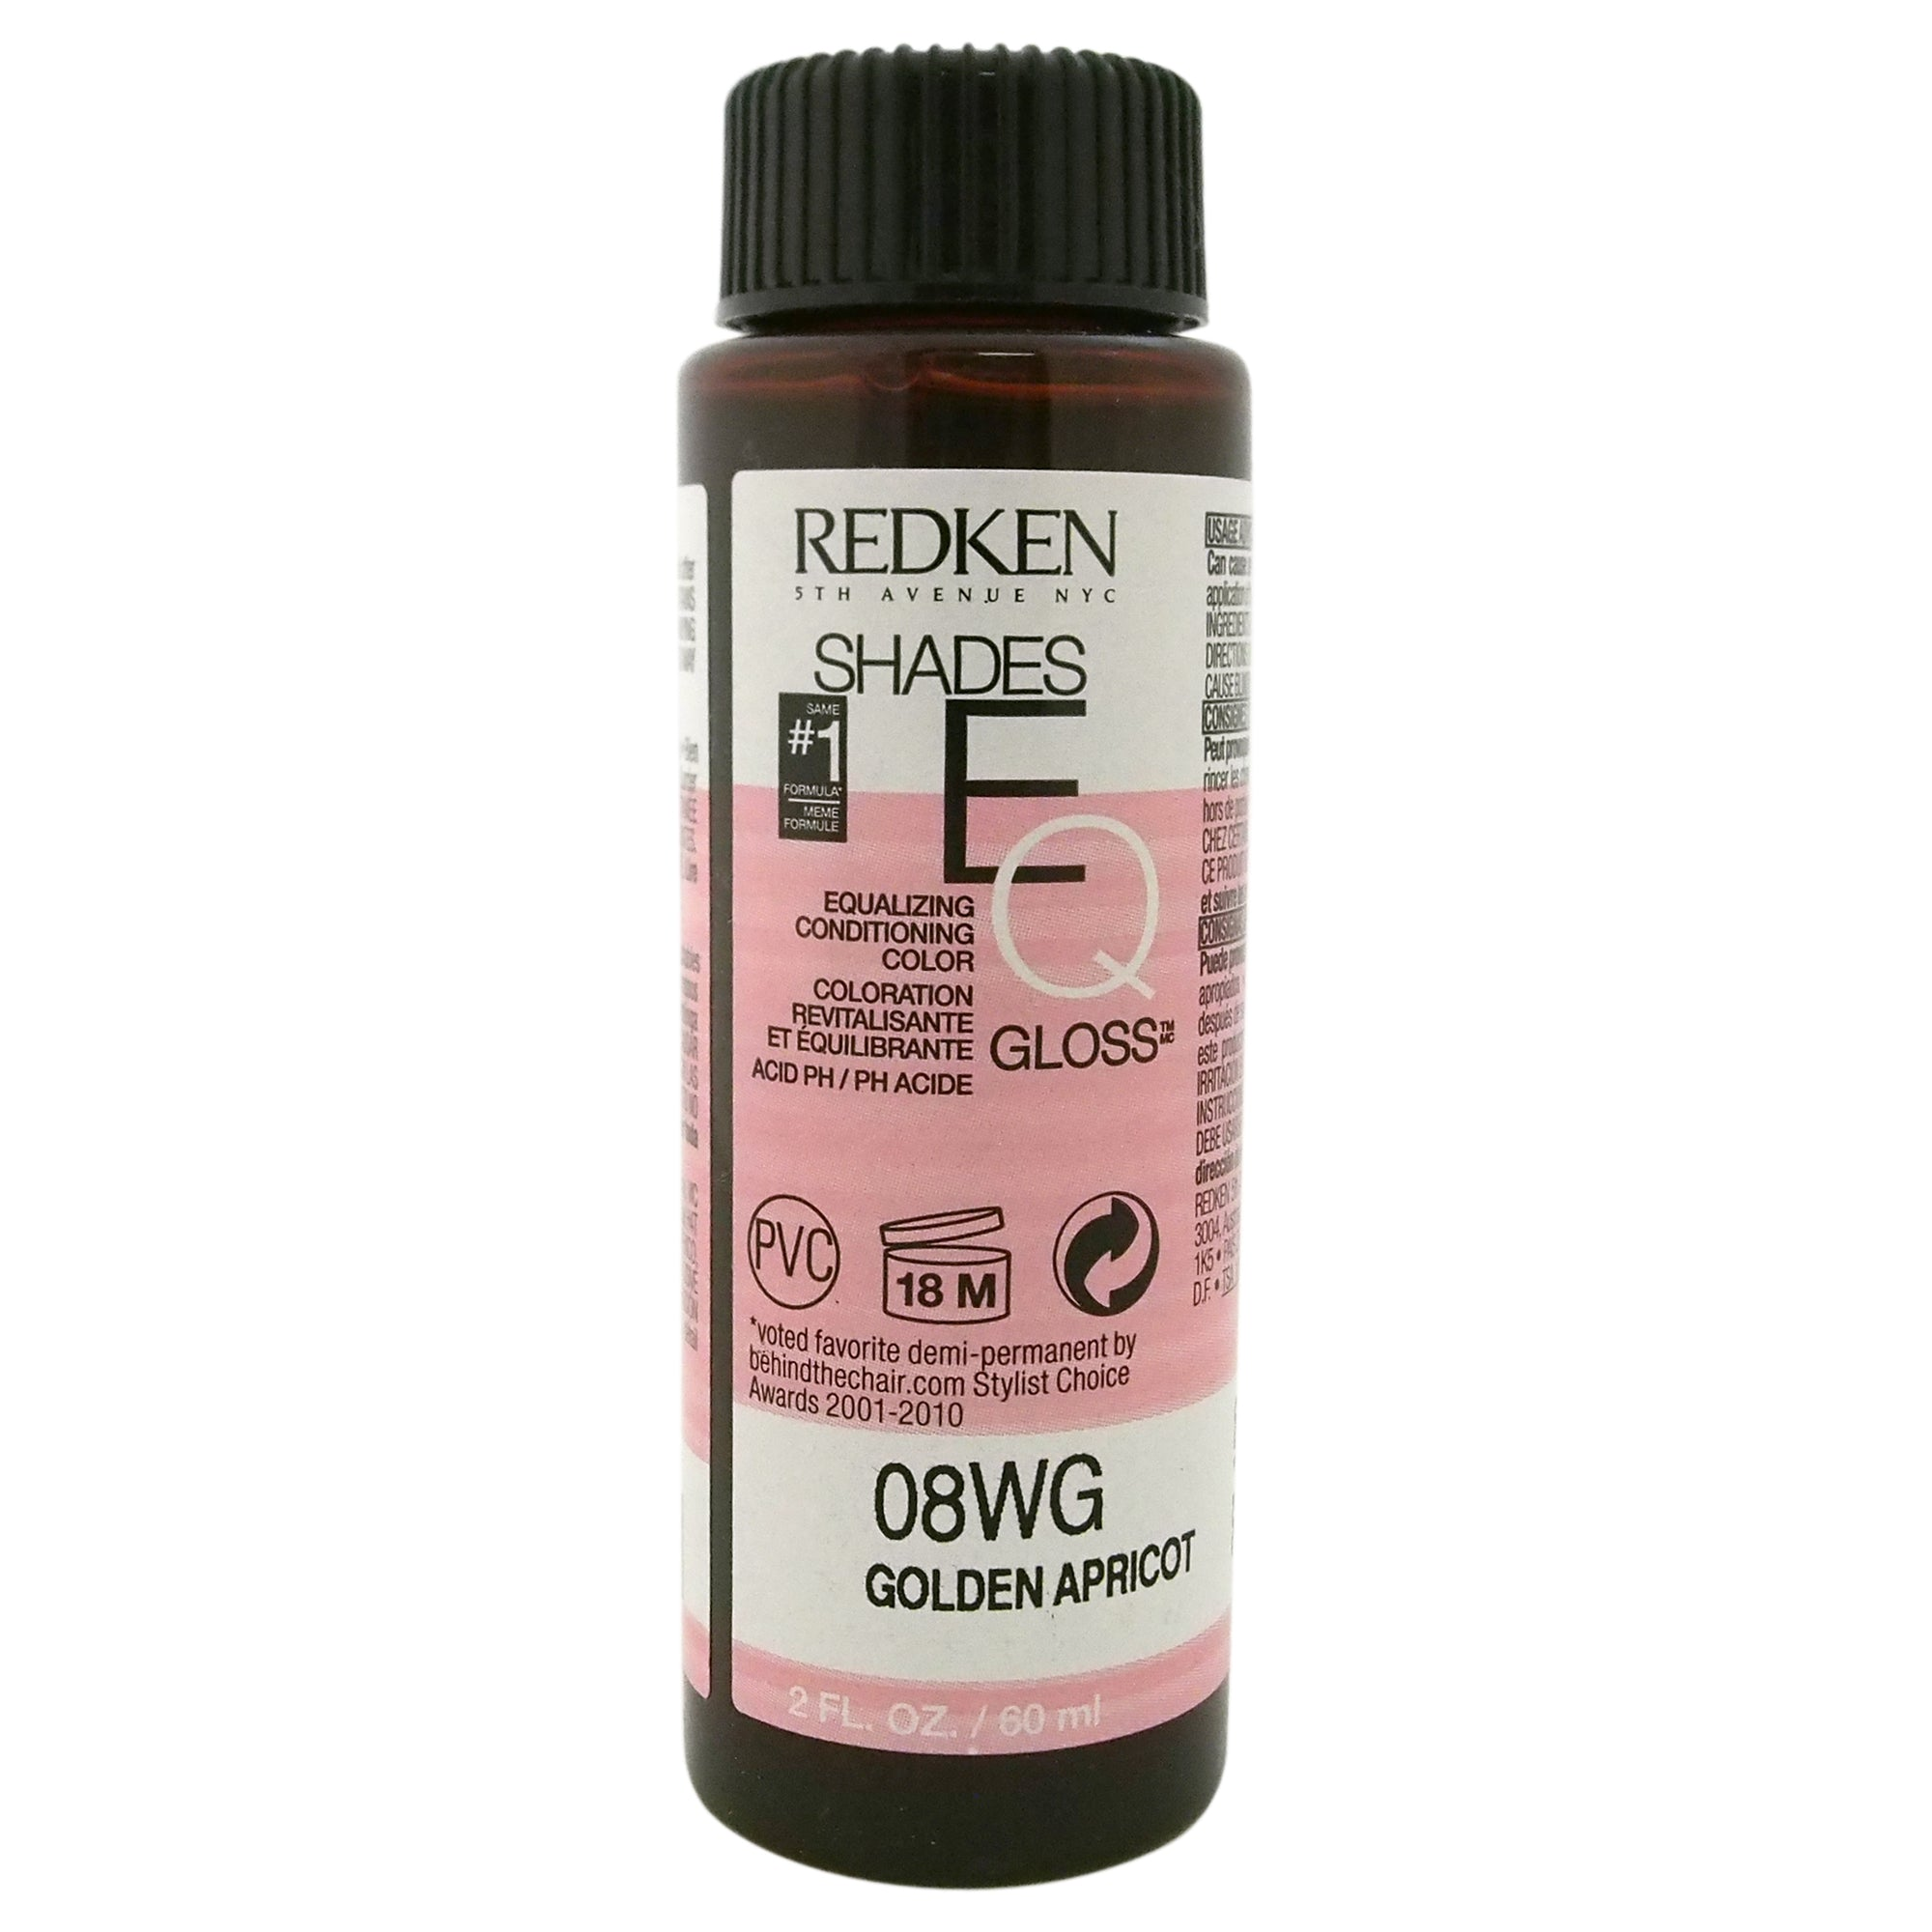 Redken Shades EQ Color Gloss 08WG